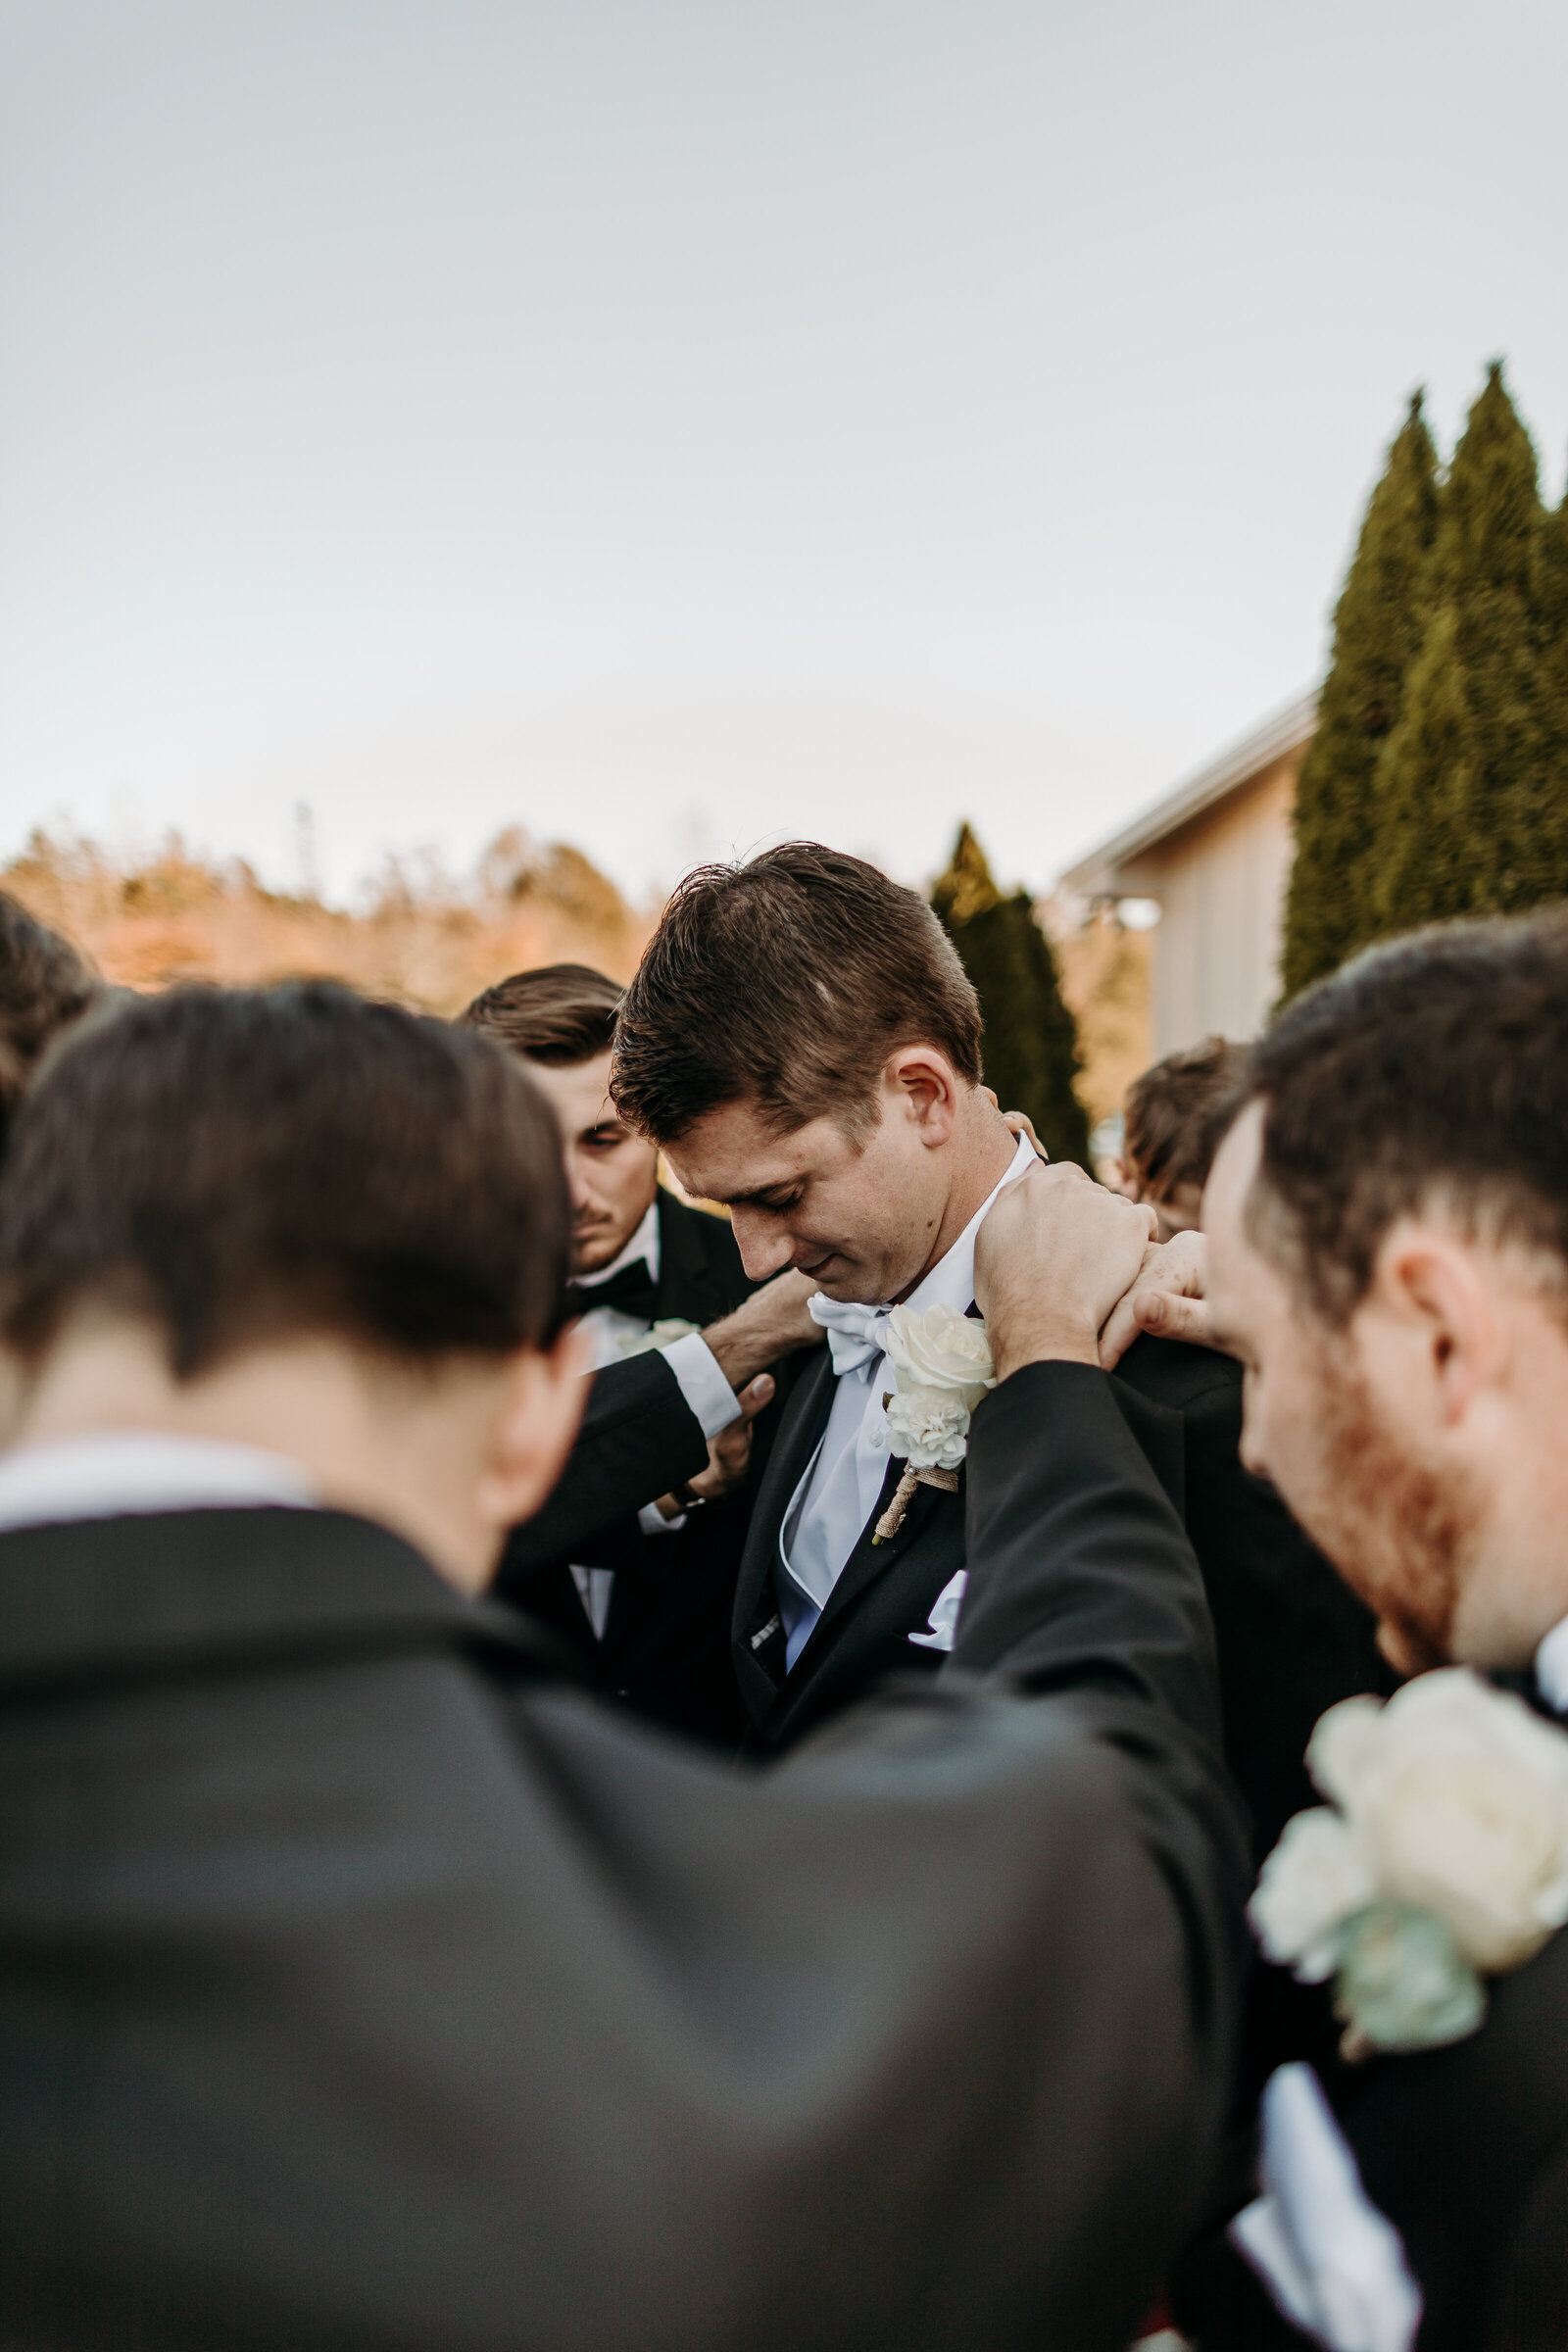 J.Michelle Photography photographs groomsmen pray for groom at vintage oaks farm wedding in Athens, Ga